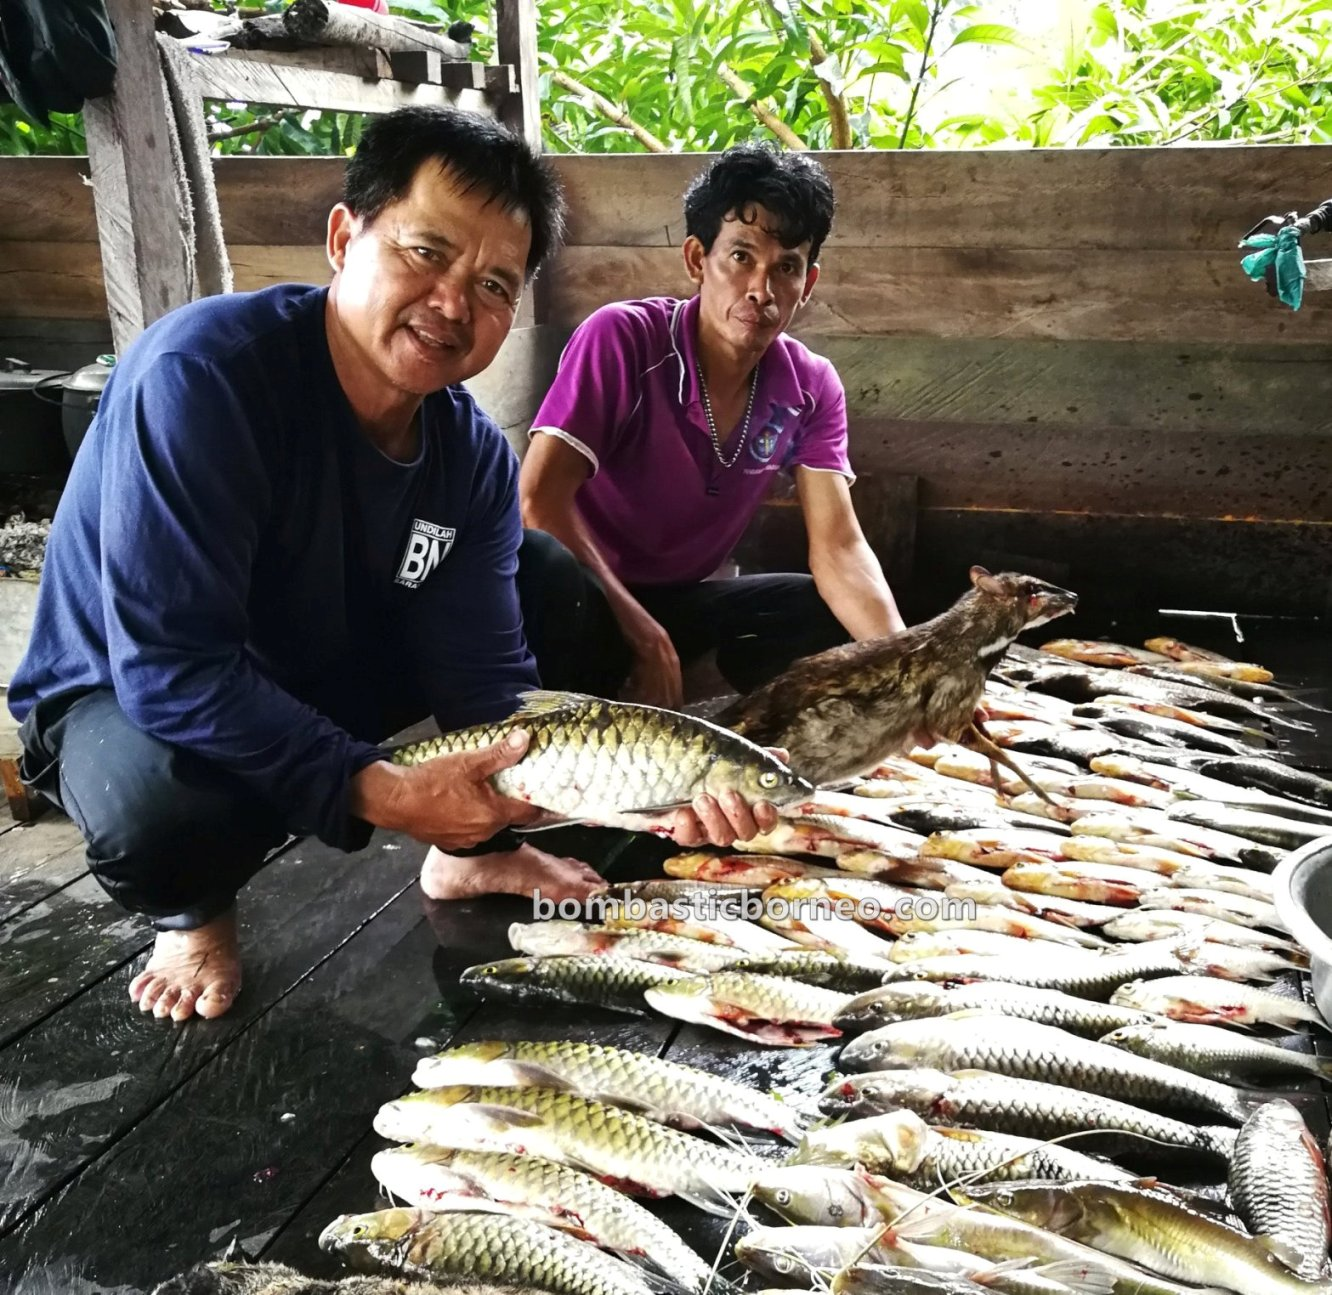 destination, Ikan semah, traditional, fishing trip, memancing, hunting, Belaga, Kapit, native, tourist attraction, travel guide, Trans Borneo, 婆罗洲钓鱼之旅, 砂拉越巴贡水电站, 巫拉甲马来西亚,